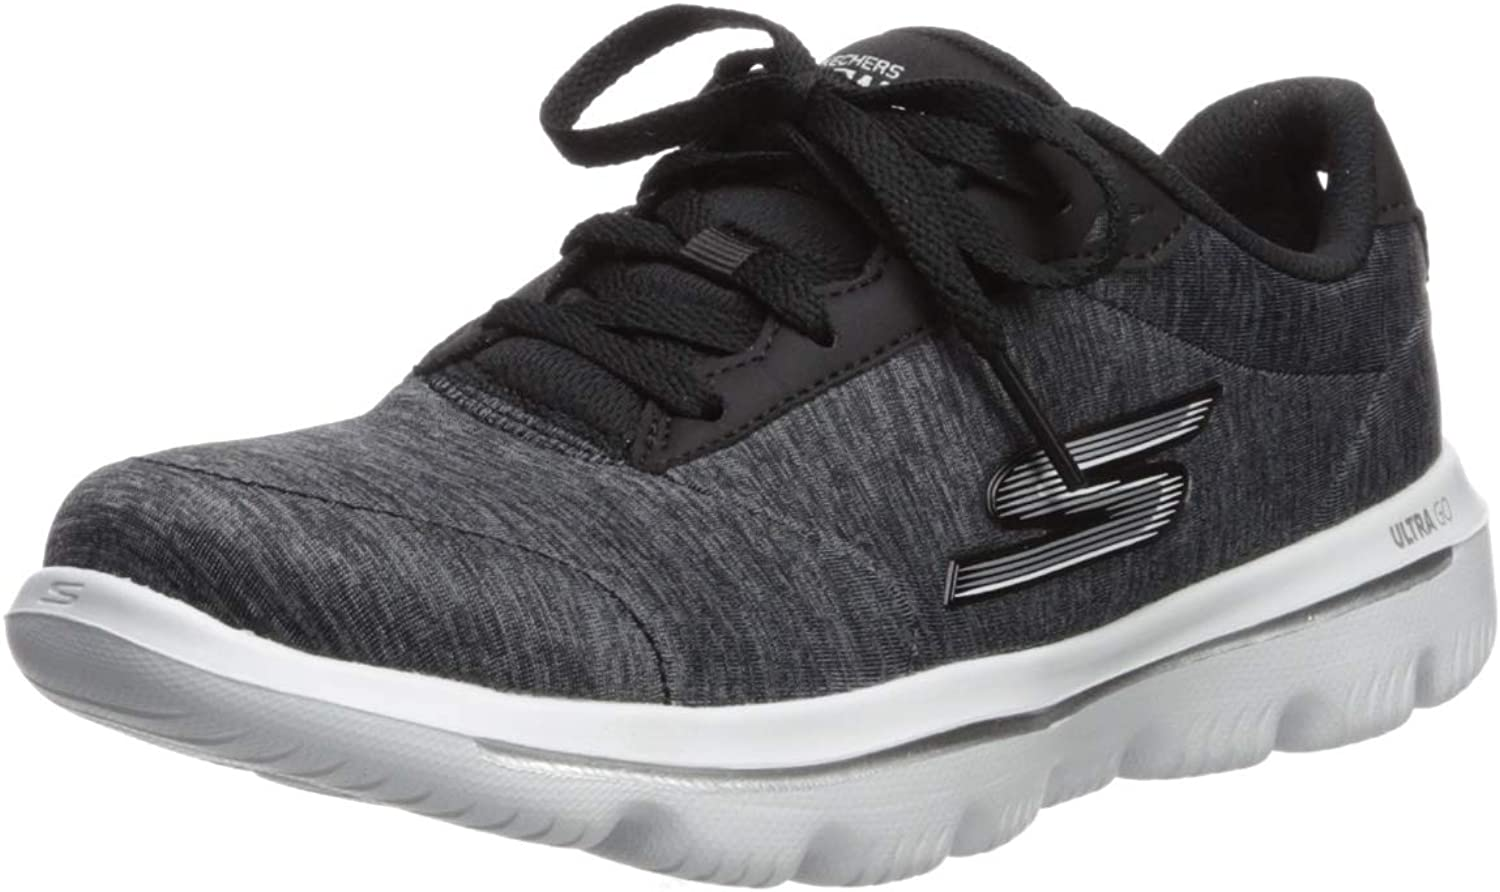 Skechers Womens Go Walk Evolution Ultra - 15756 Sneaker